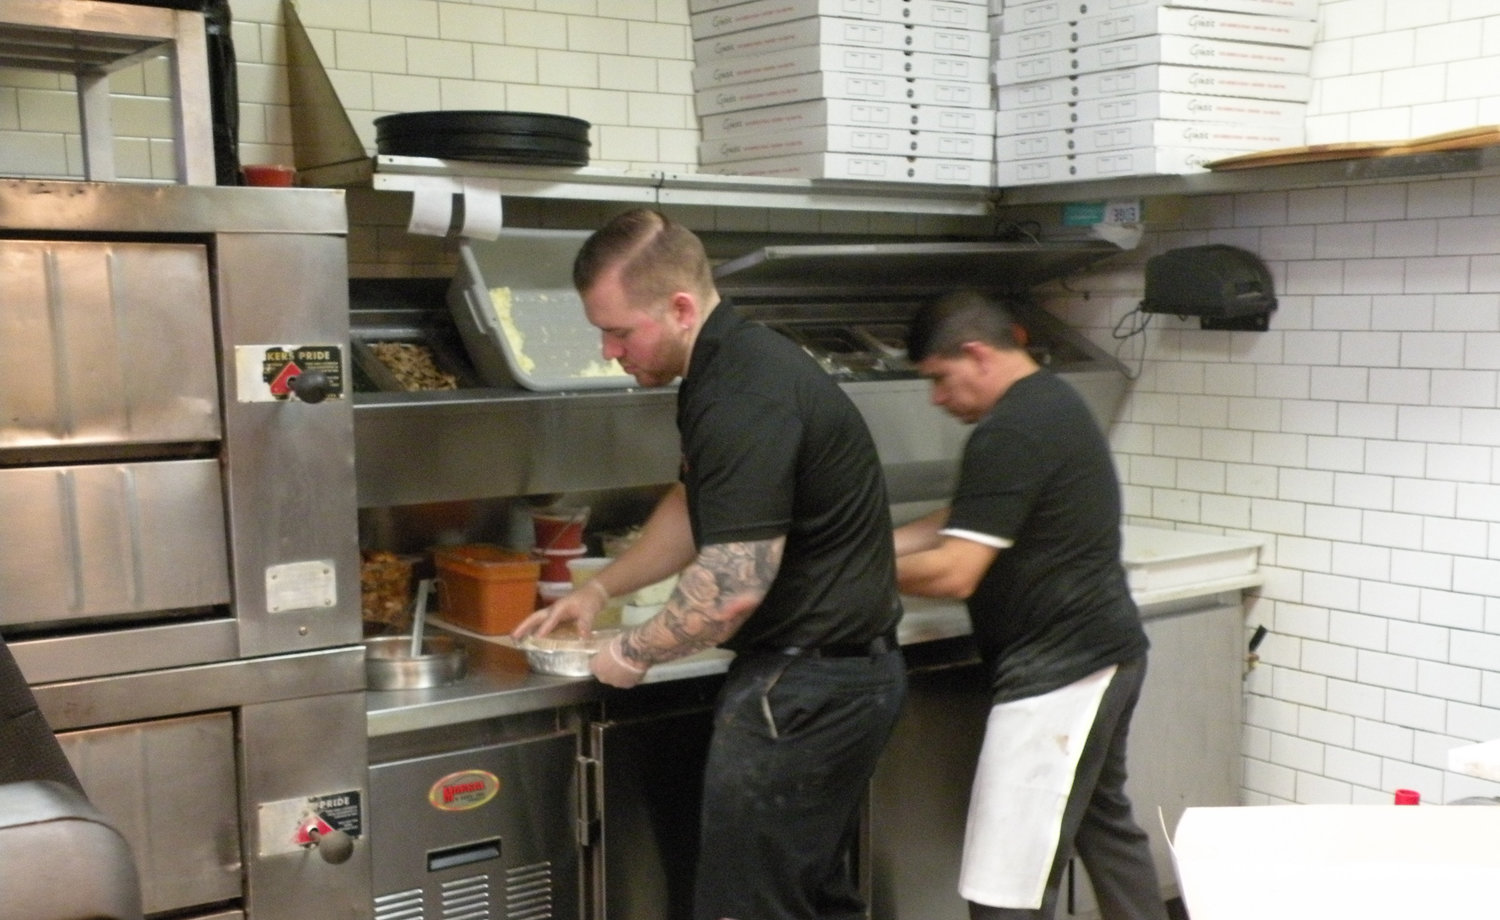 Gino's of Seaford co-owner Joseph Donlan, left, helped prepare pizza kits on Friday, March 20.